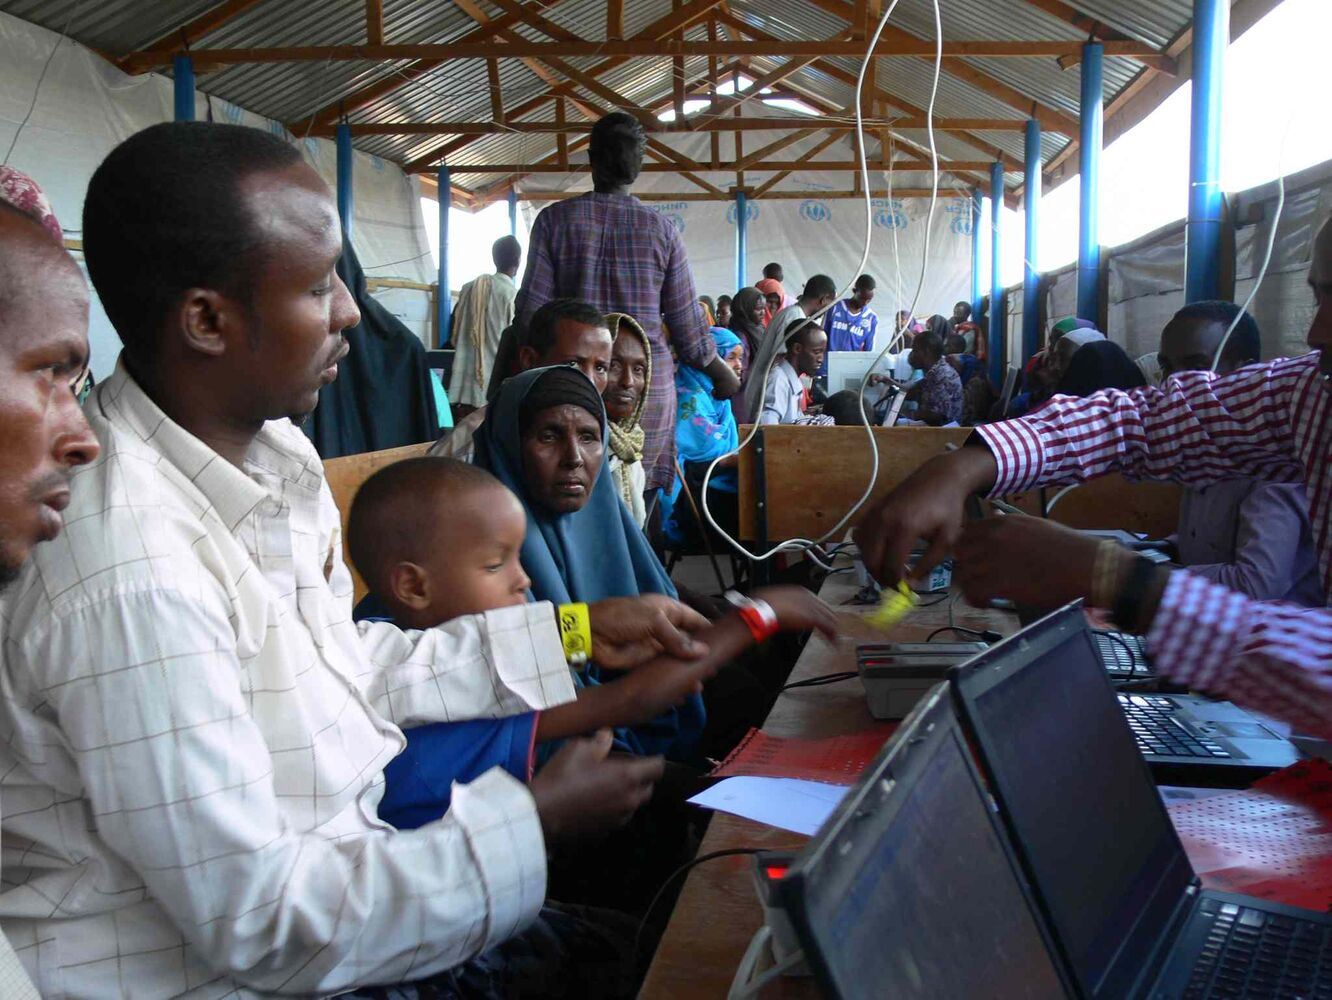 The UNHCR uses biometric imaging to register new refugees at Ifo 2 camp in Dadaab. The electronic system ensures the identity of the refugees, and has seen the number of refugees receiving services in Dadaab reduced from more than 400,000 to just over 357,000. (Carol Sanders / Winnipeg Free Press)